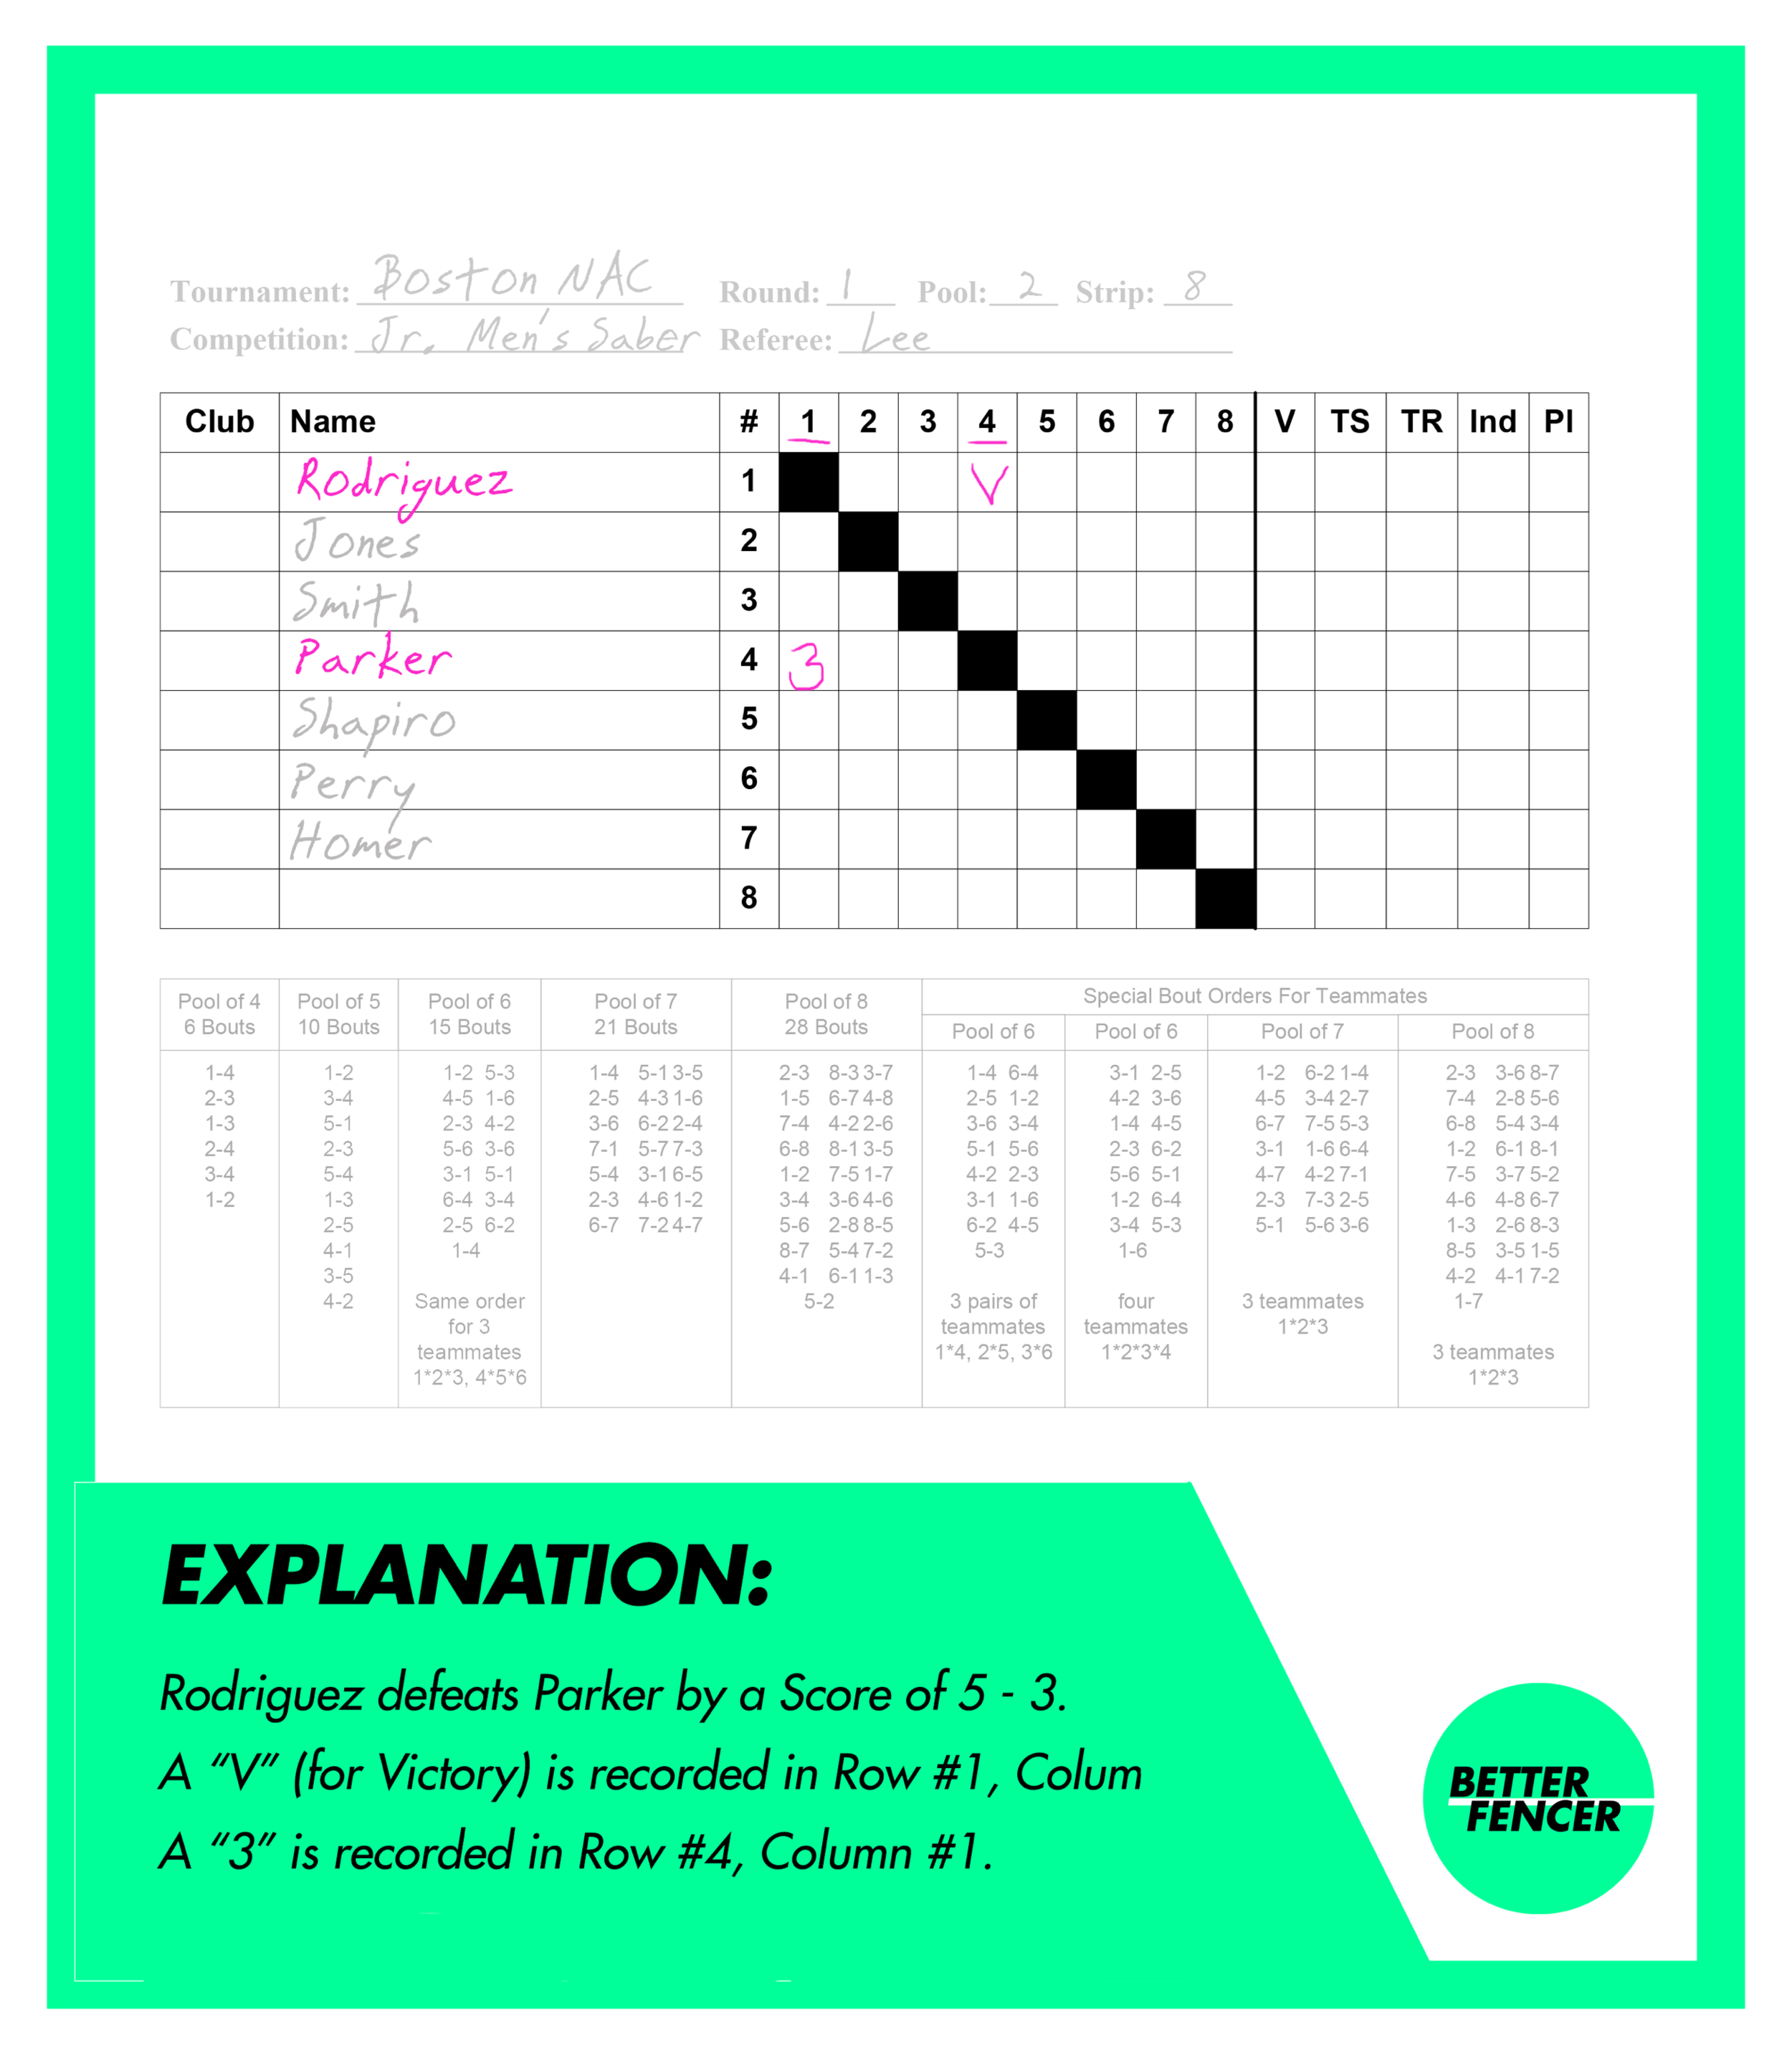 Fencing pool sheet, showing how to find the results of completed pool bouts between specific fencers.